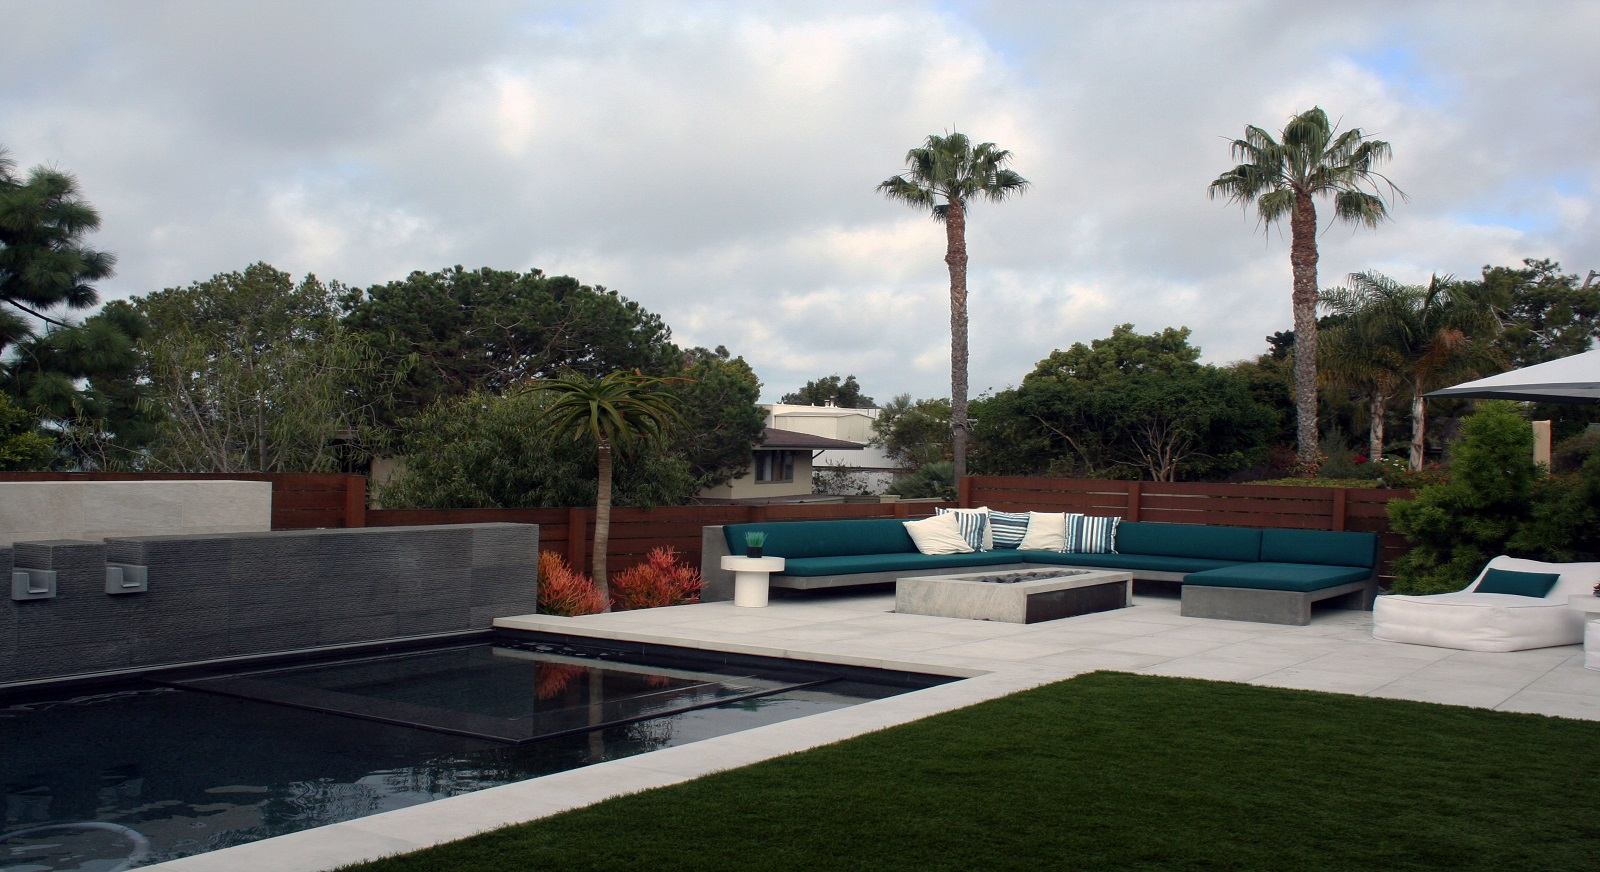 cross construction remodel landscape fence pool spa fire corten